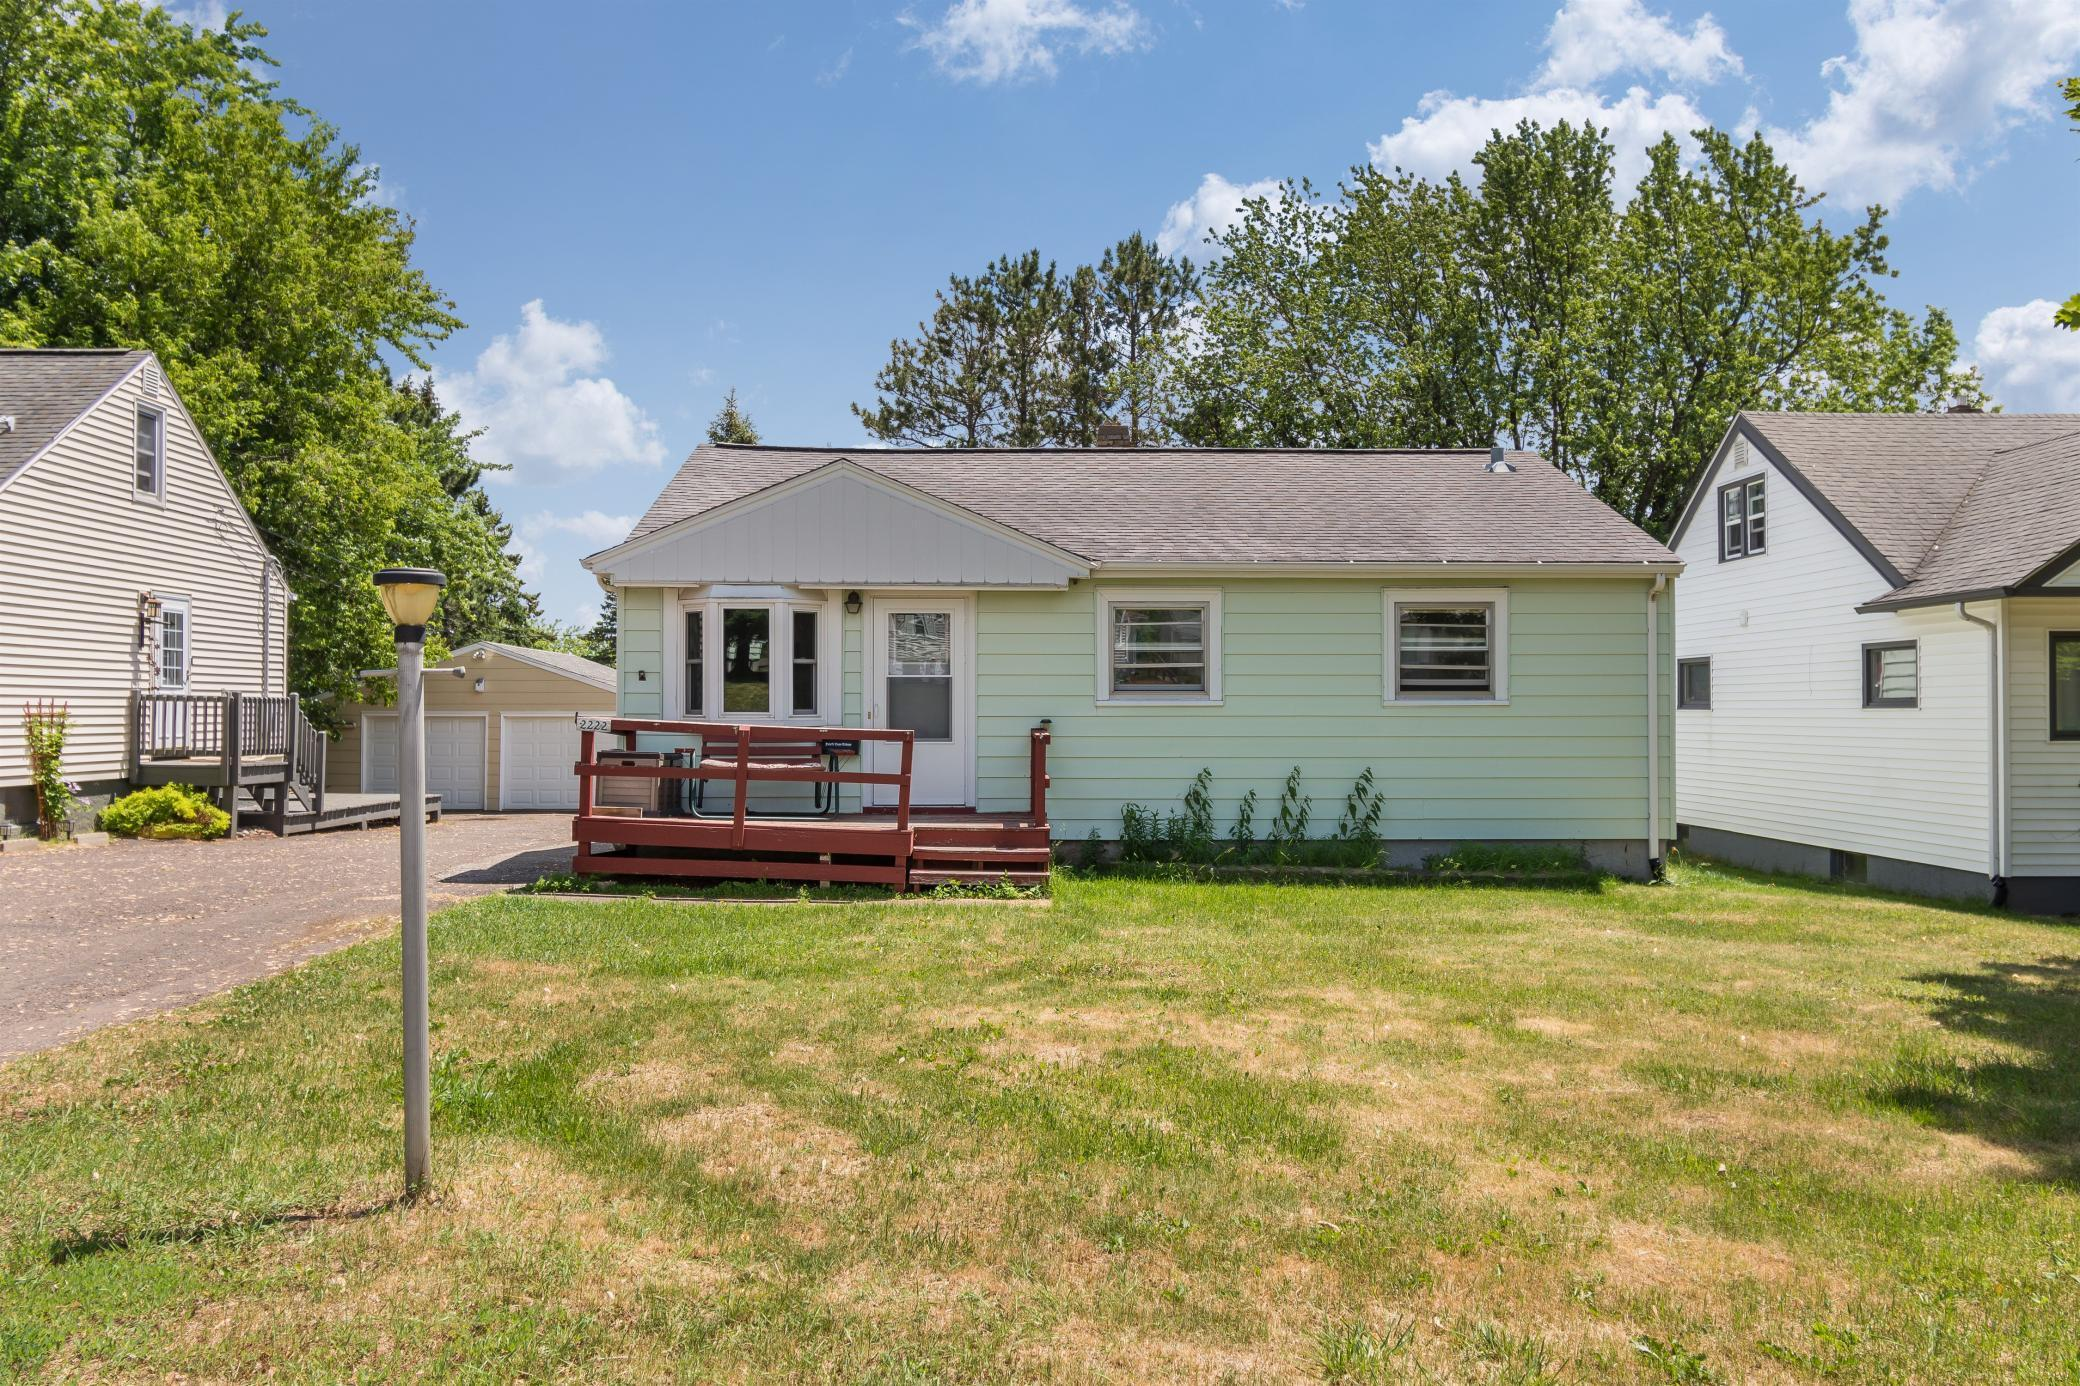 2222 W 22nd Street Property Photo - Duluth, MN real estate listing